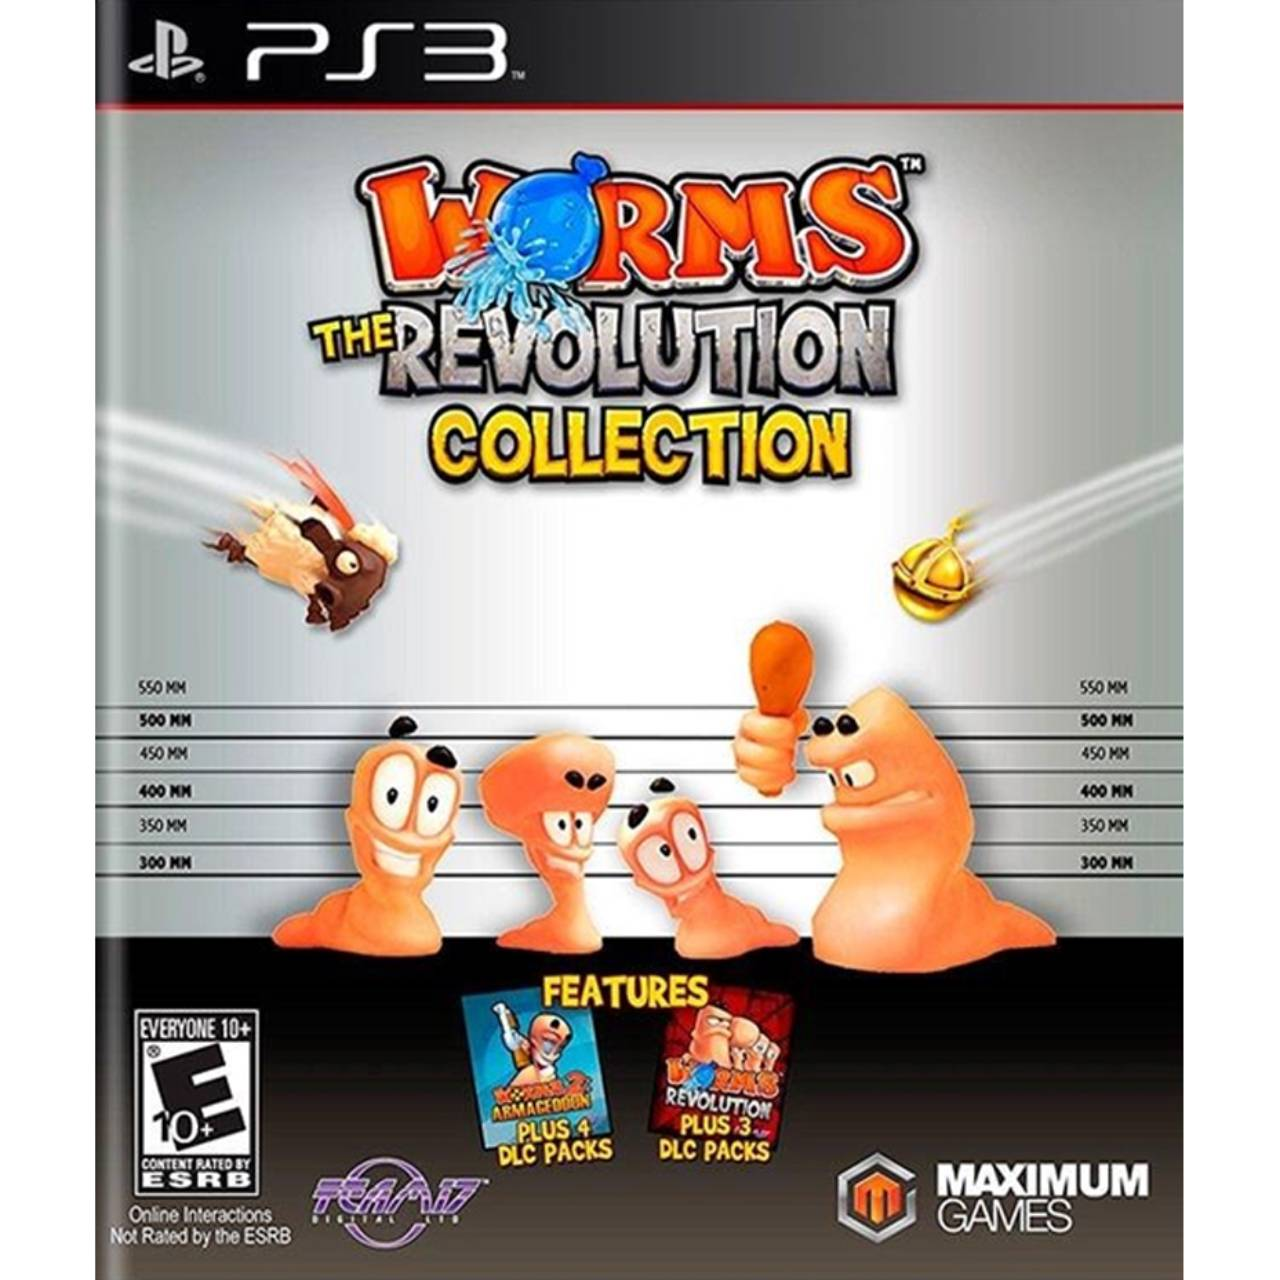 Worms: The Revolution Collection - PS3 por IT Computadores, Games Celulares